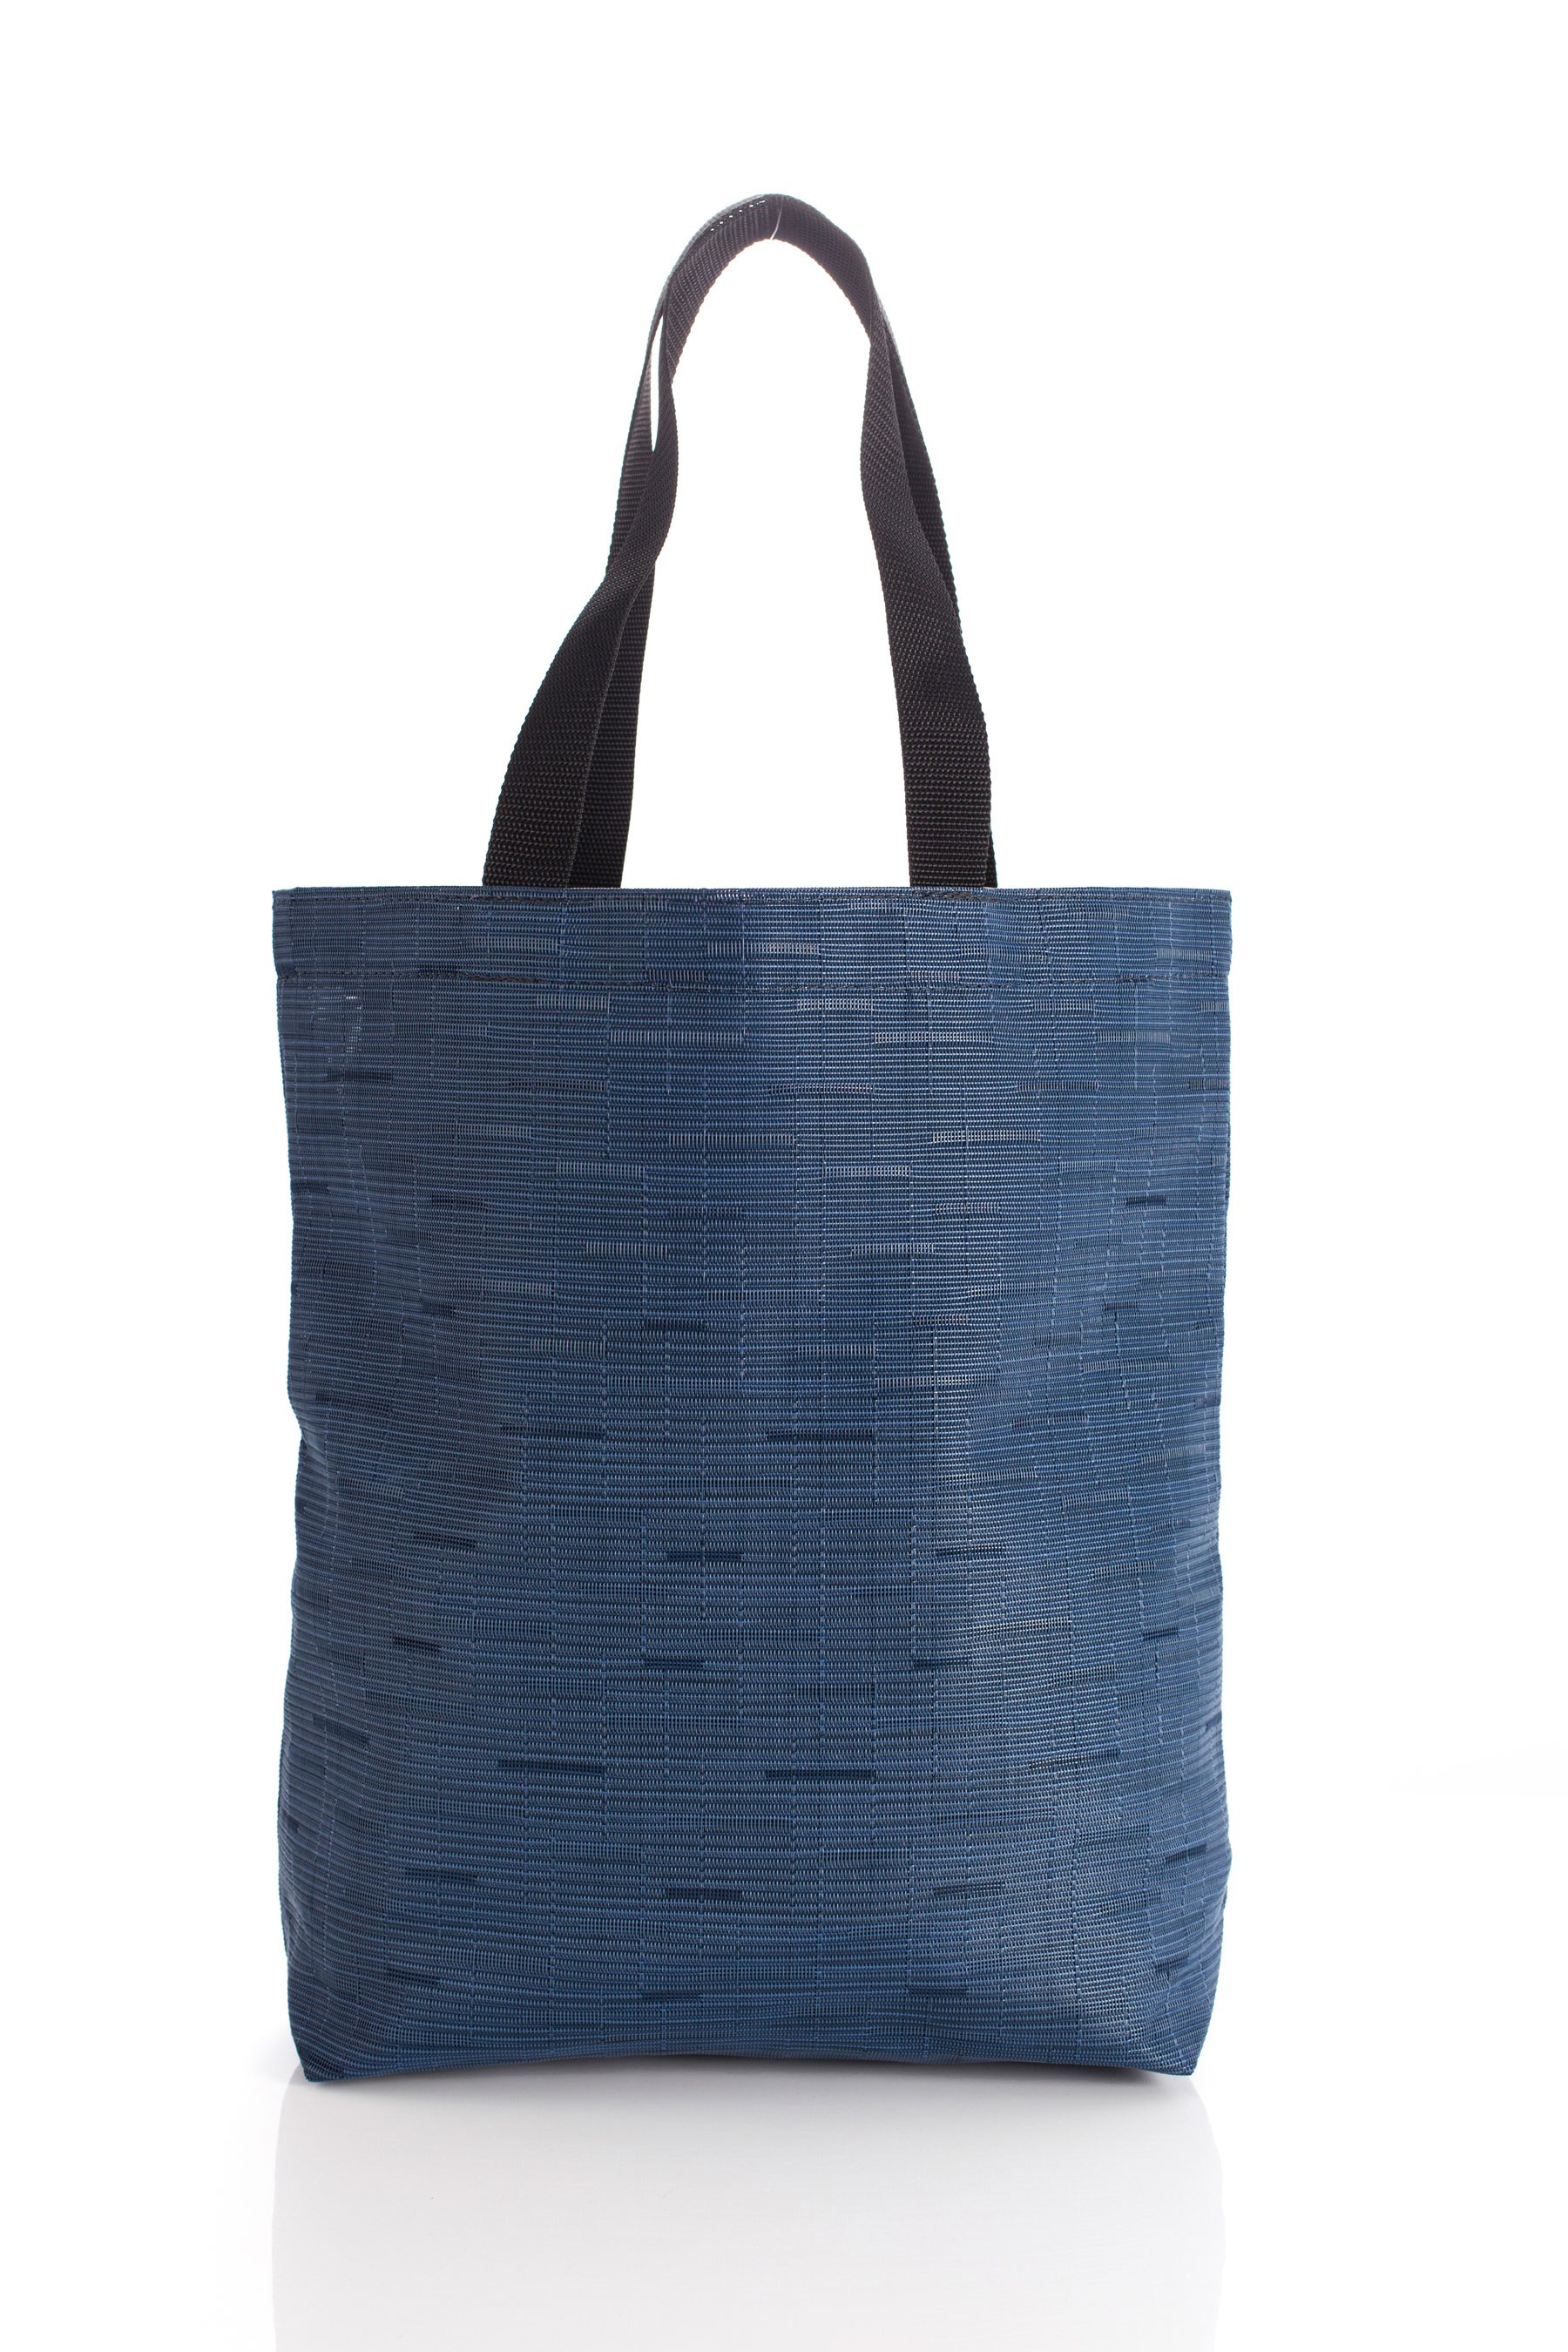 Chilewich Bamboo Tote Bag